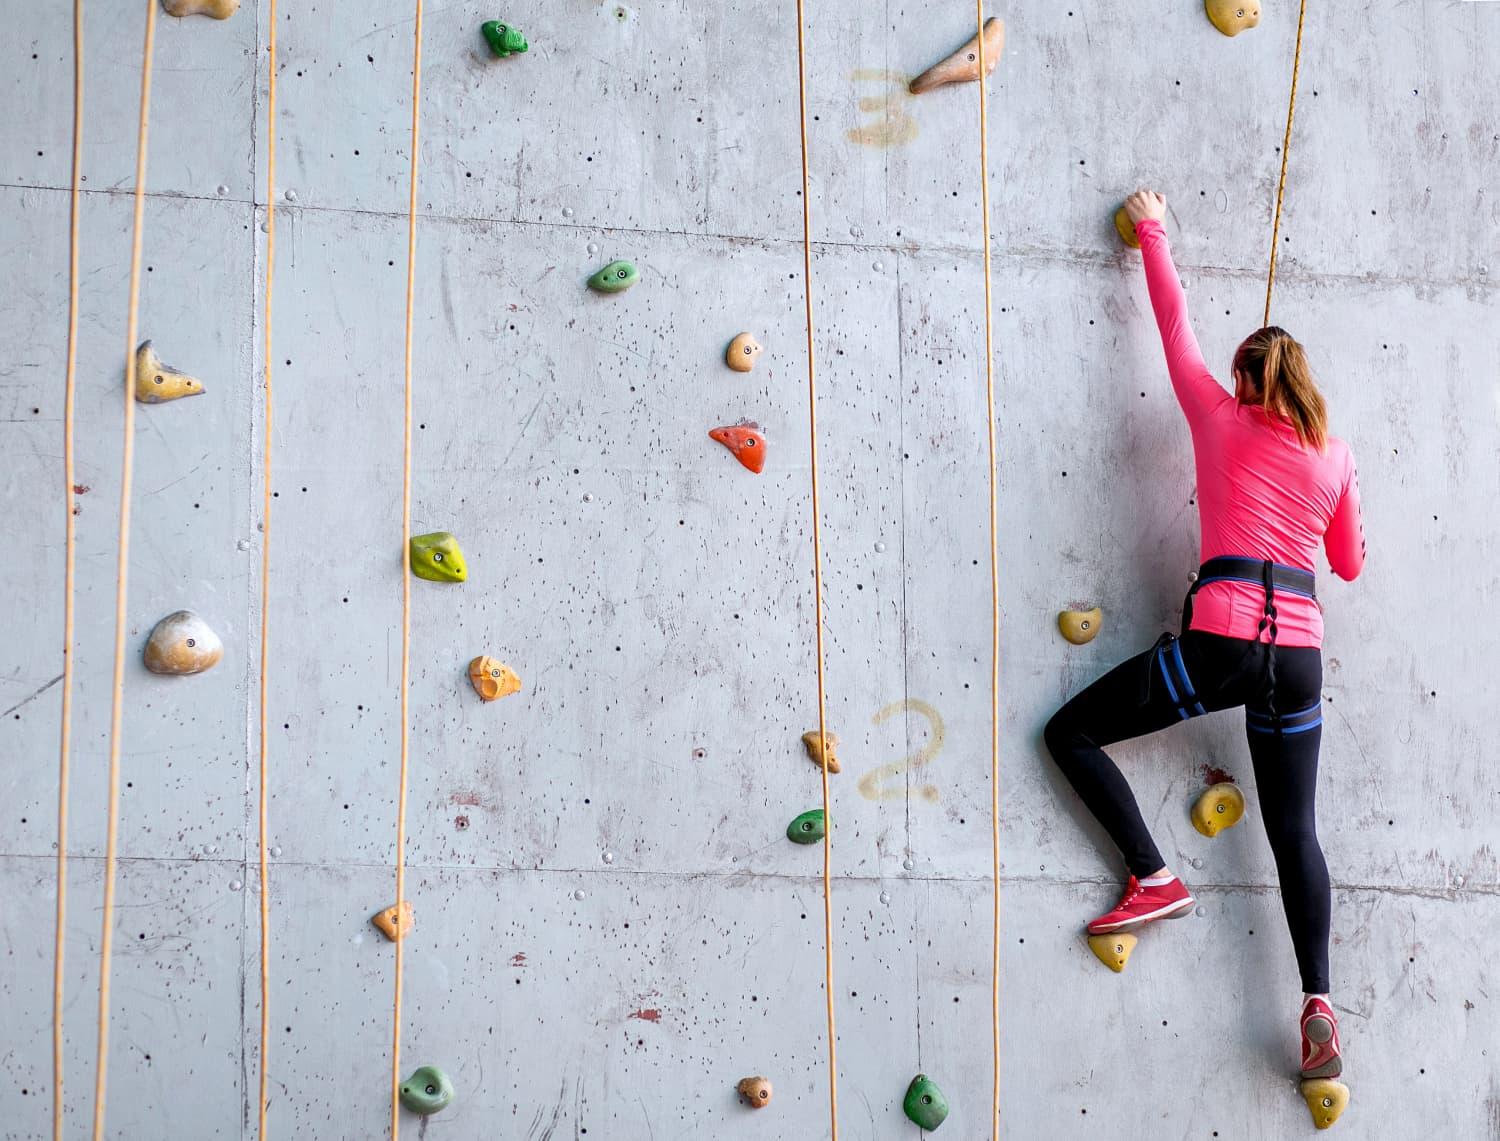 This Danish Architect Is Building a 279-Foot-Tall Building That You Can Climb—But Would You?